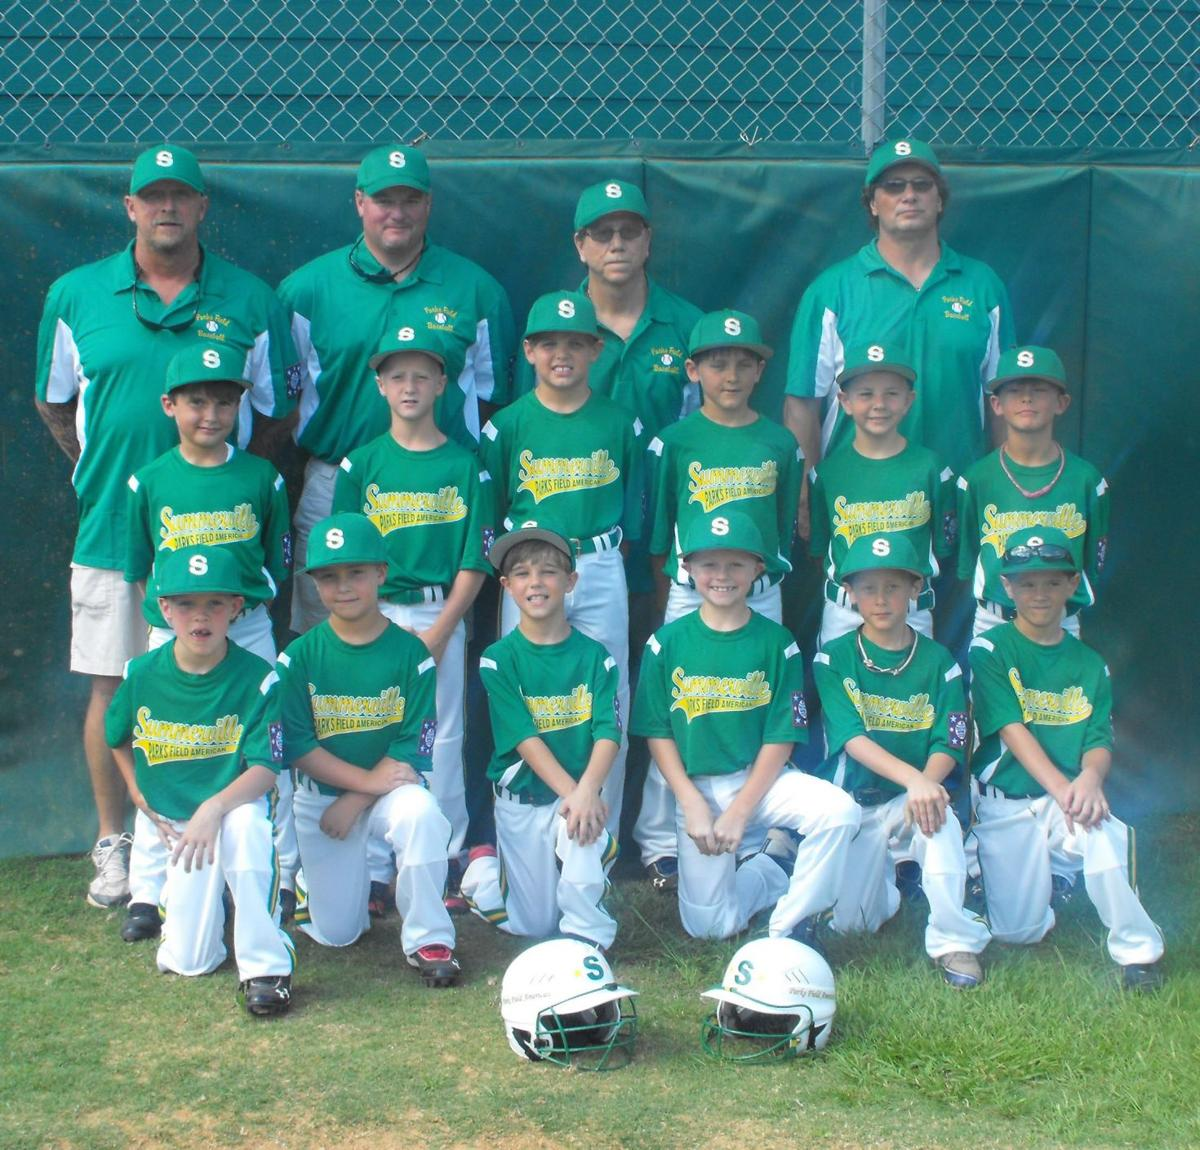 Parks Field champs again in machine pitch